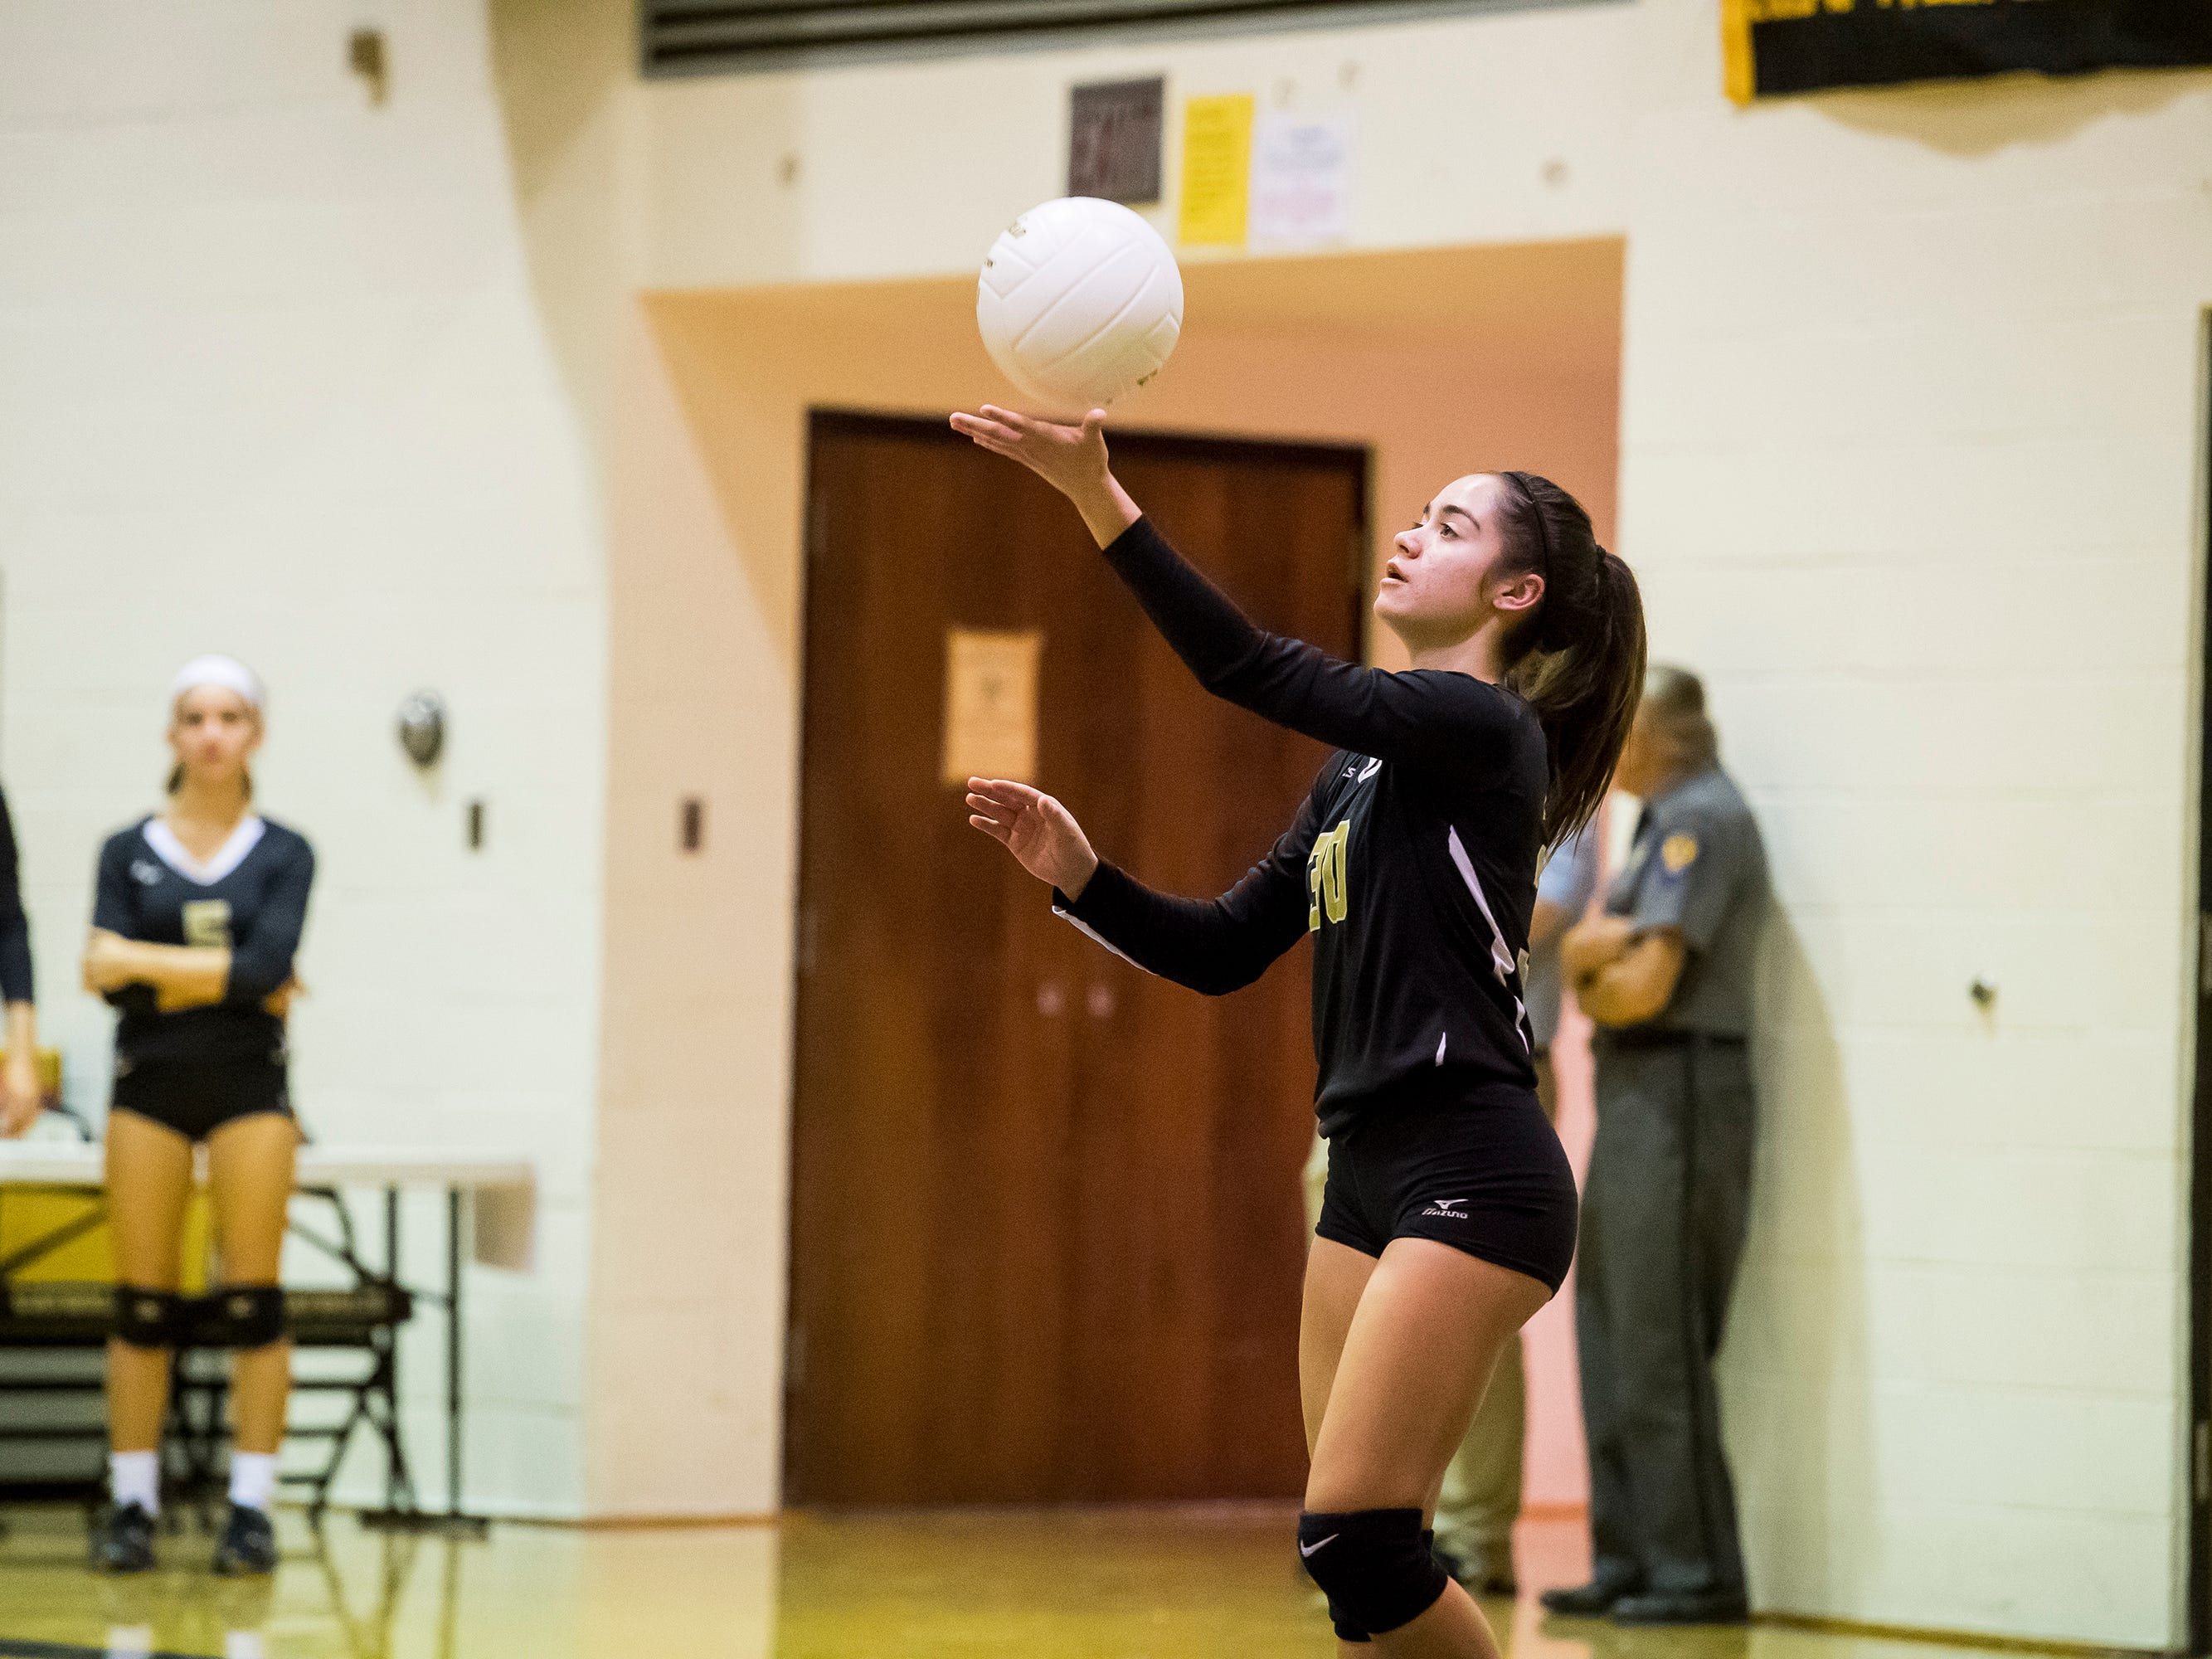 Delone Catholic's Janina Romero serves the ball to Hanover on Tuesday, September 18, 2018. The Squirettes swept the Hawkettes 25-16, 25-19, 25-14.